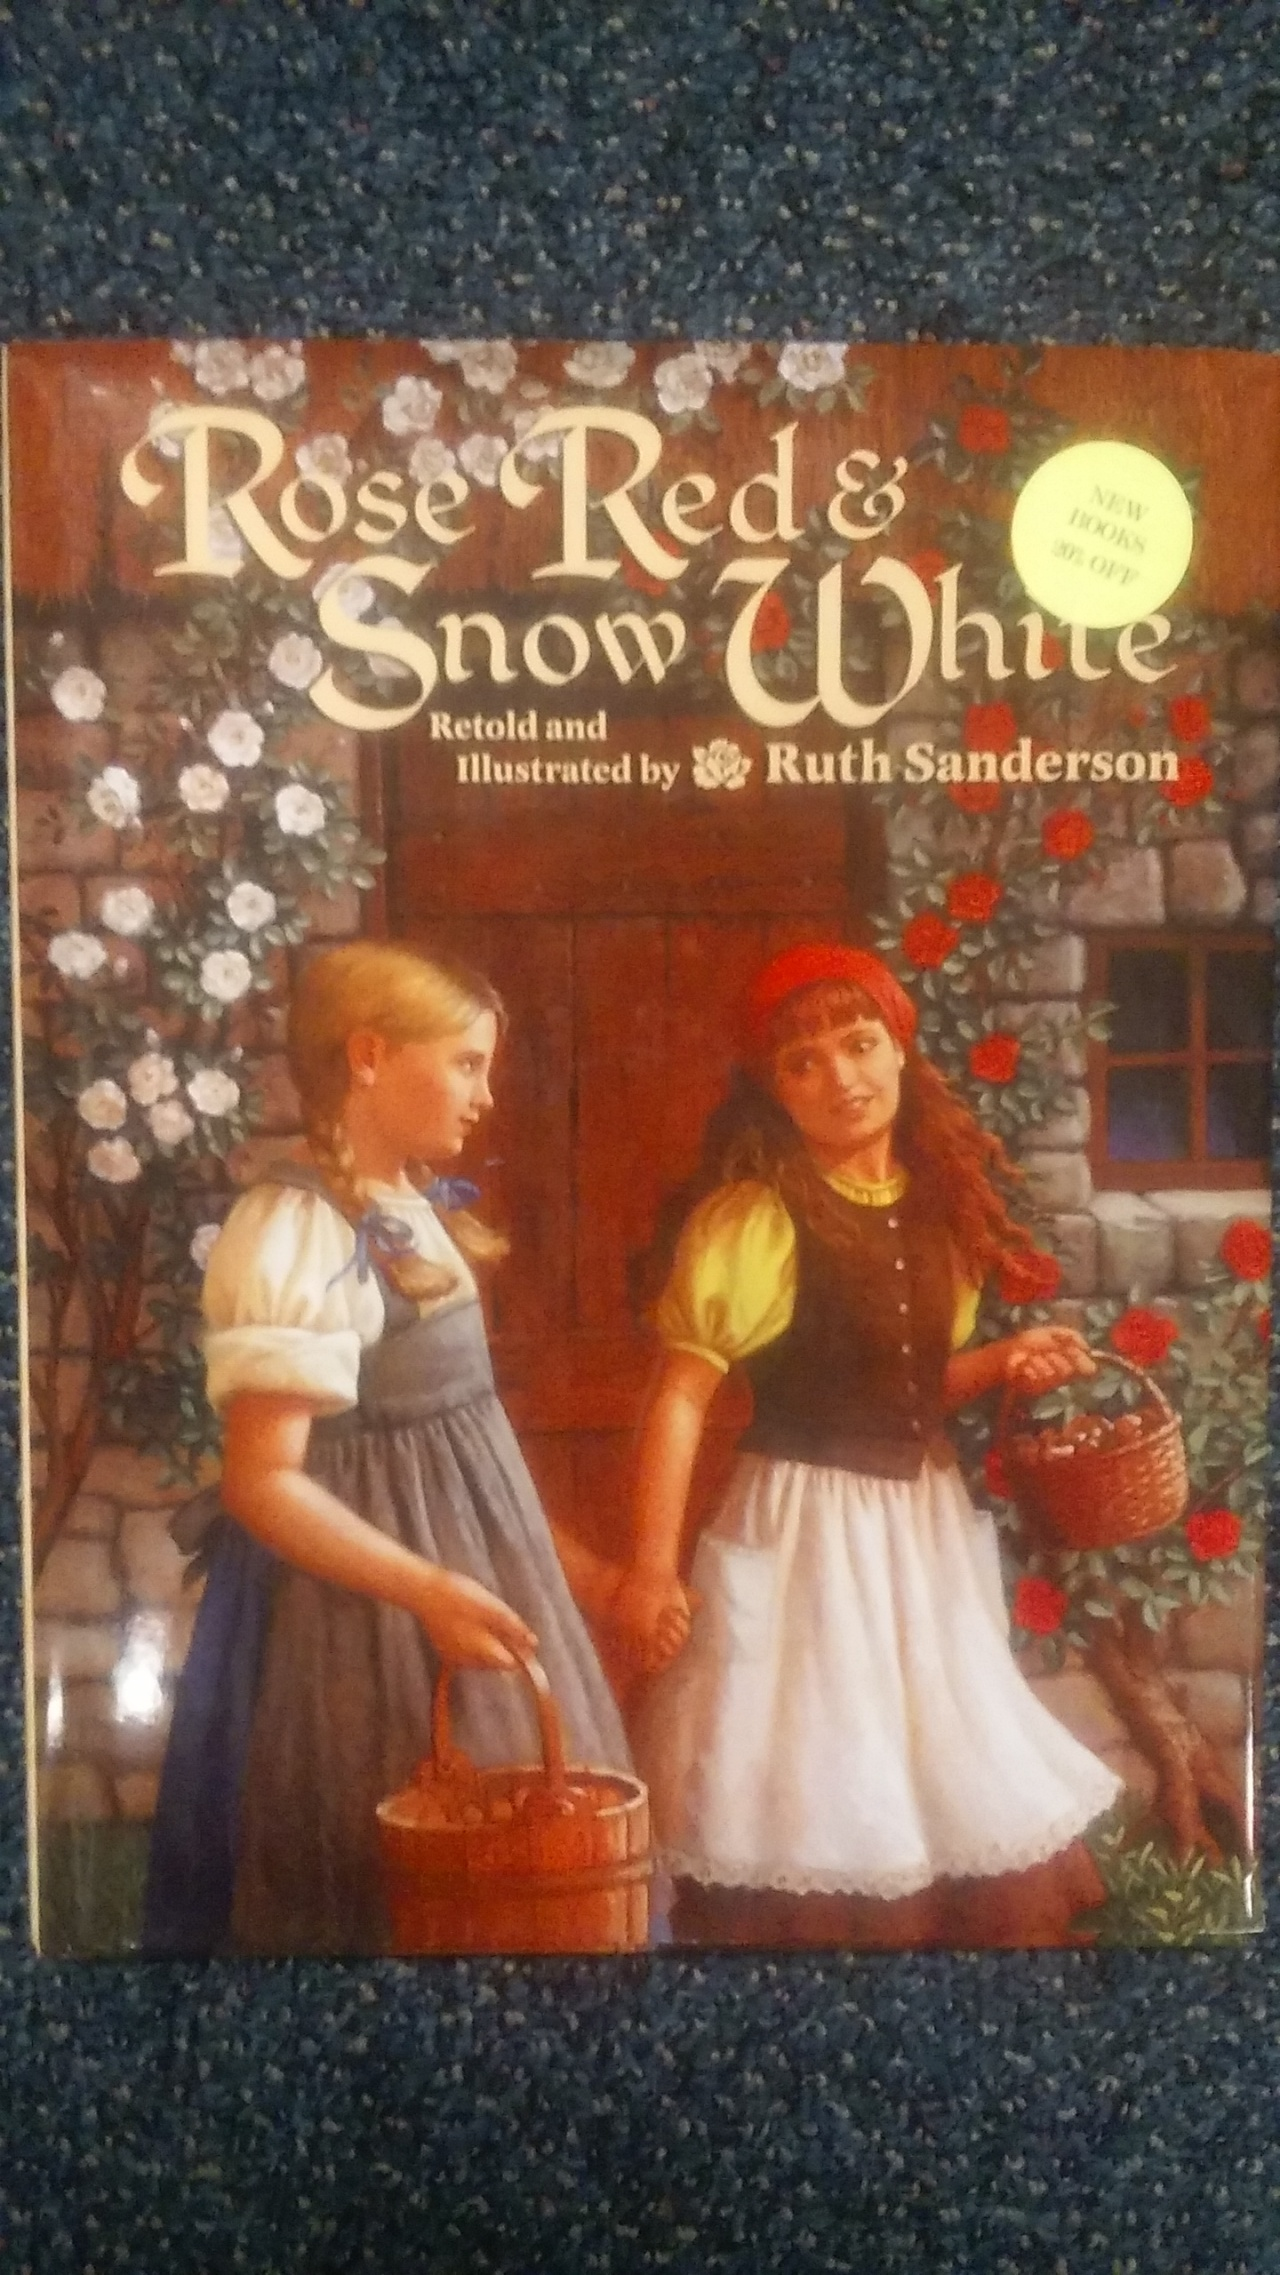 12092015 - Ruth Sanderson Rose Red